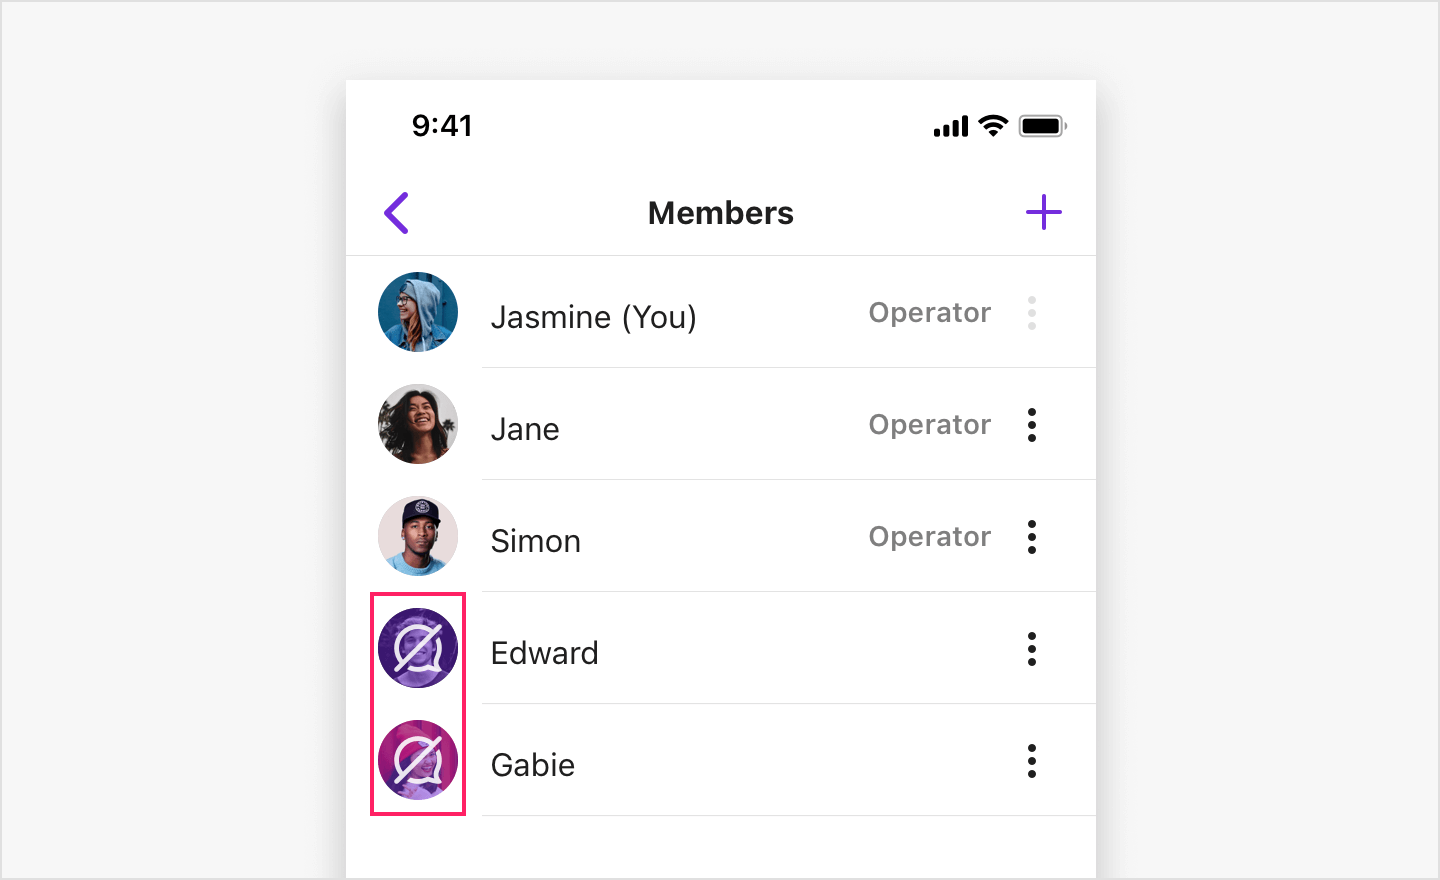 Image|Channel member list view showing muted members with the mute icon.